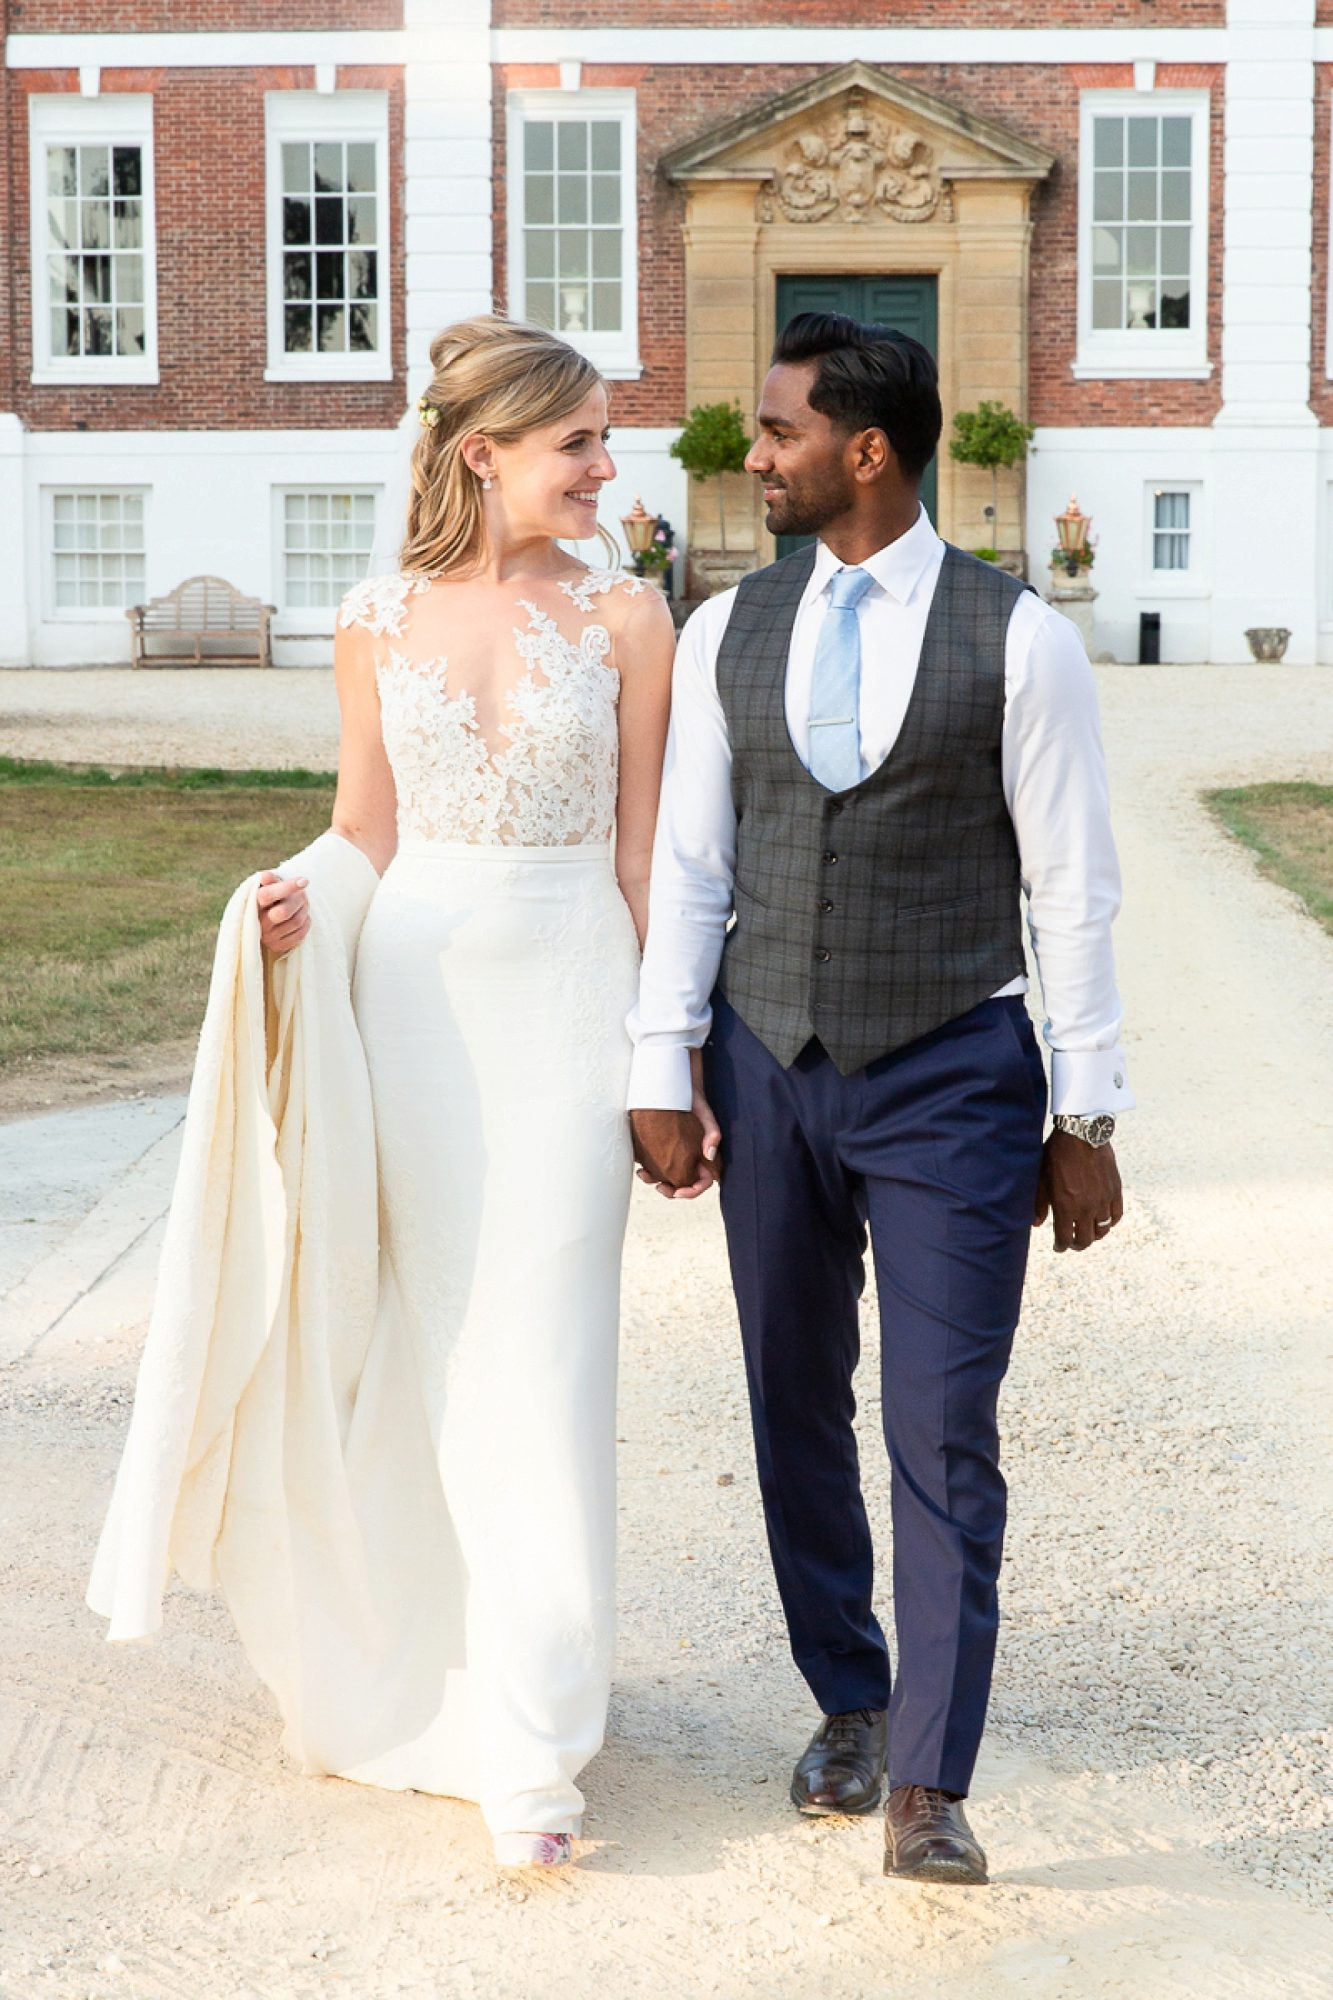 Bride and groom look towards each other as they walk holding hands with Pynes house behind them